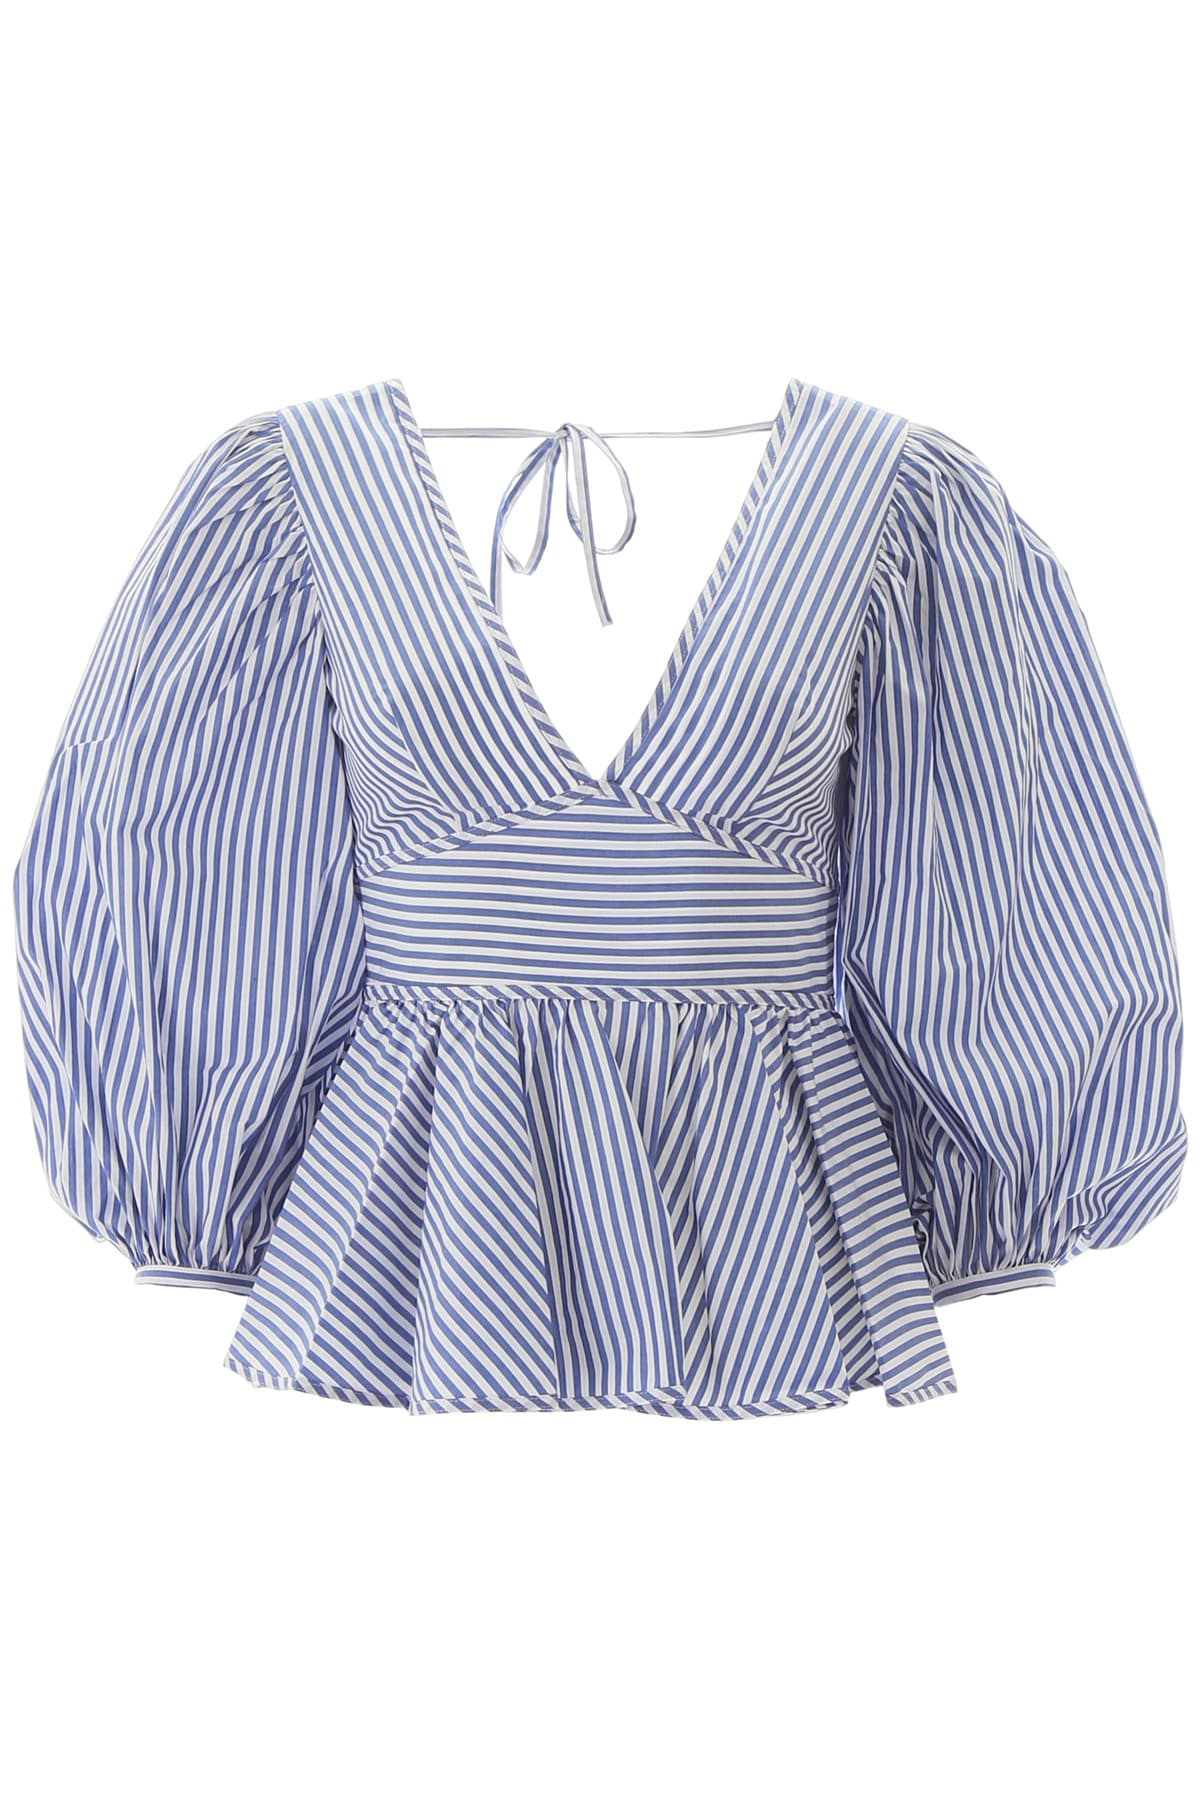 Staud STRIPED LUNA TOP